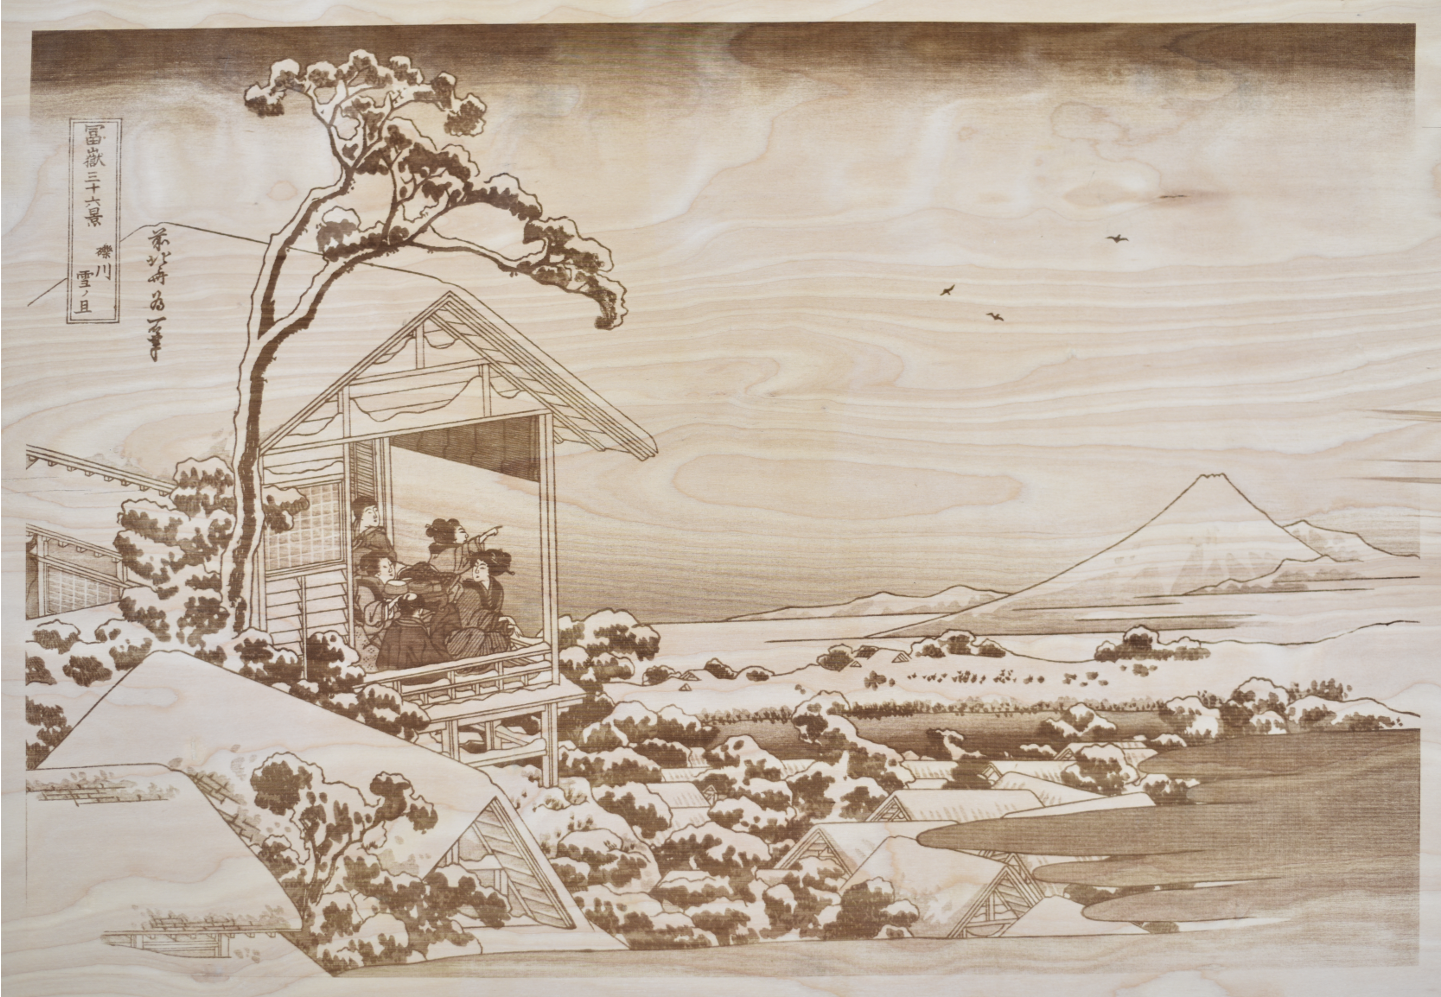 Digital Pyrograph of the Teahouse at Koishikawa the morning after a snowfall. This print shows men and women in a teahouse looking at Mount Fuji in the morning after a snowfall.